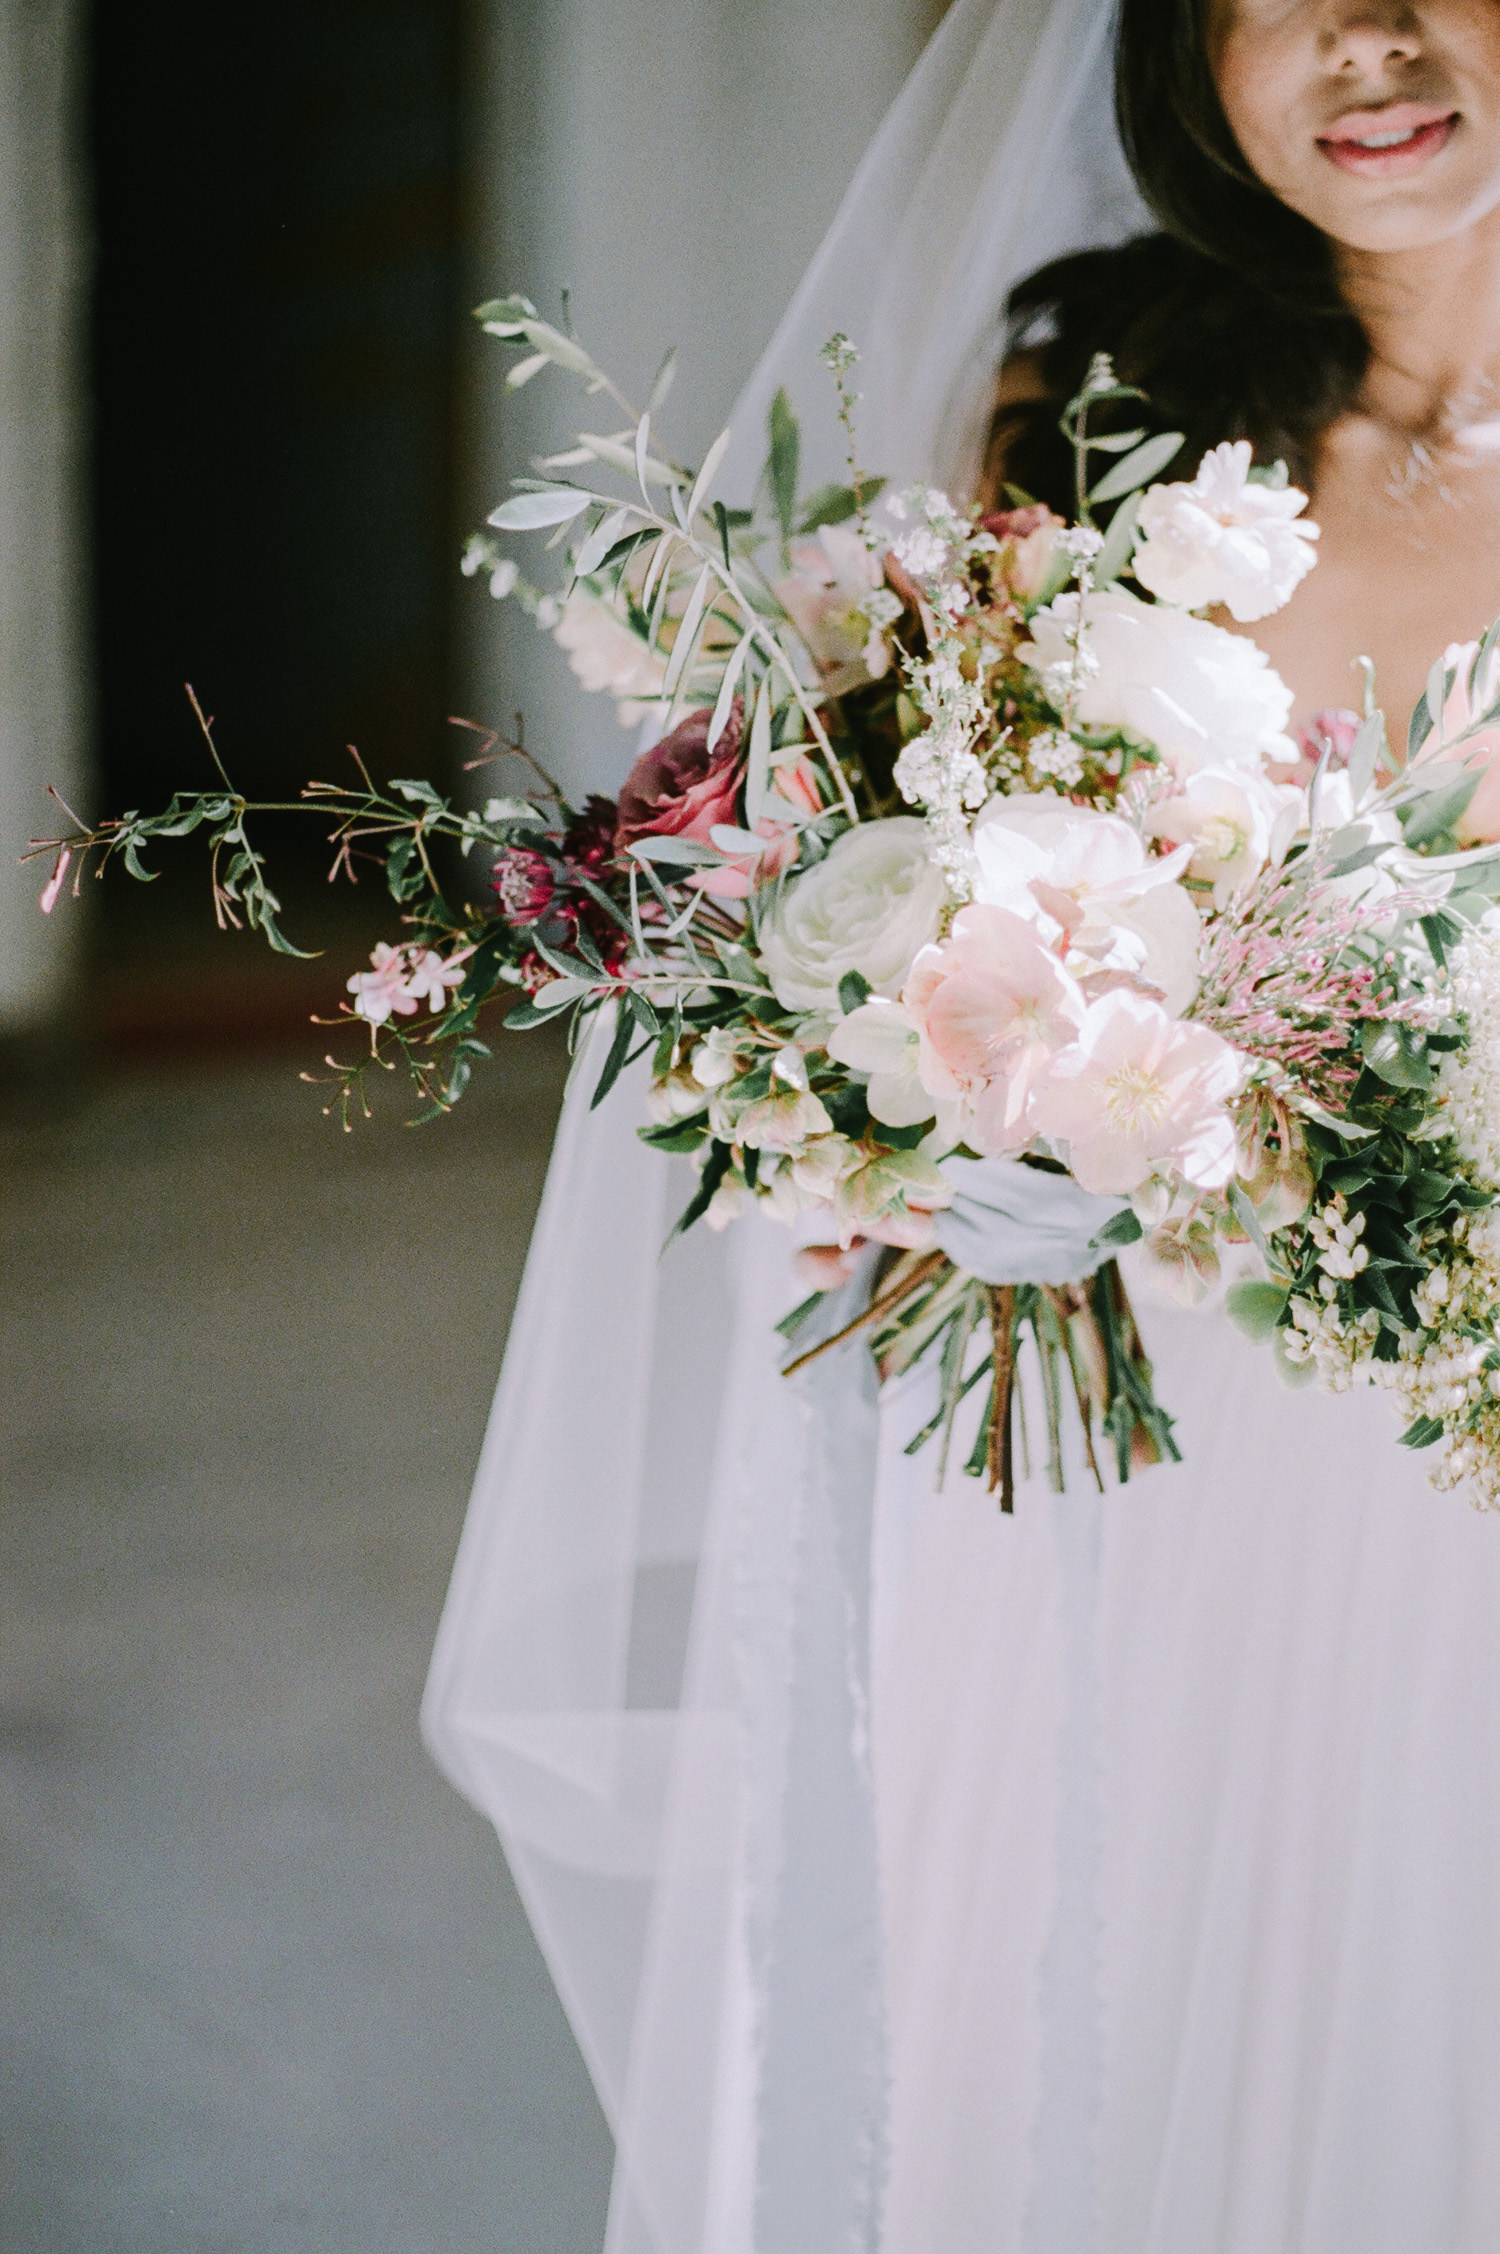 An Indian bride holds a lush wedding bouquet with roses, hellebores, and olive leaves in Detroit